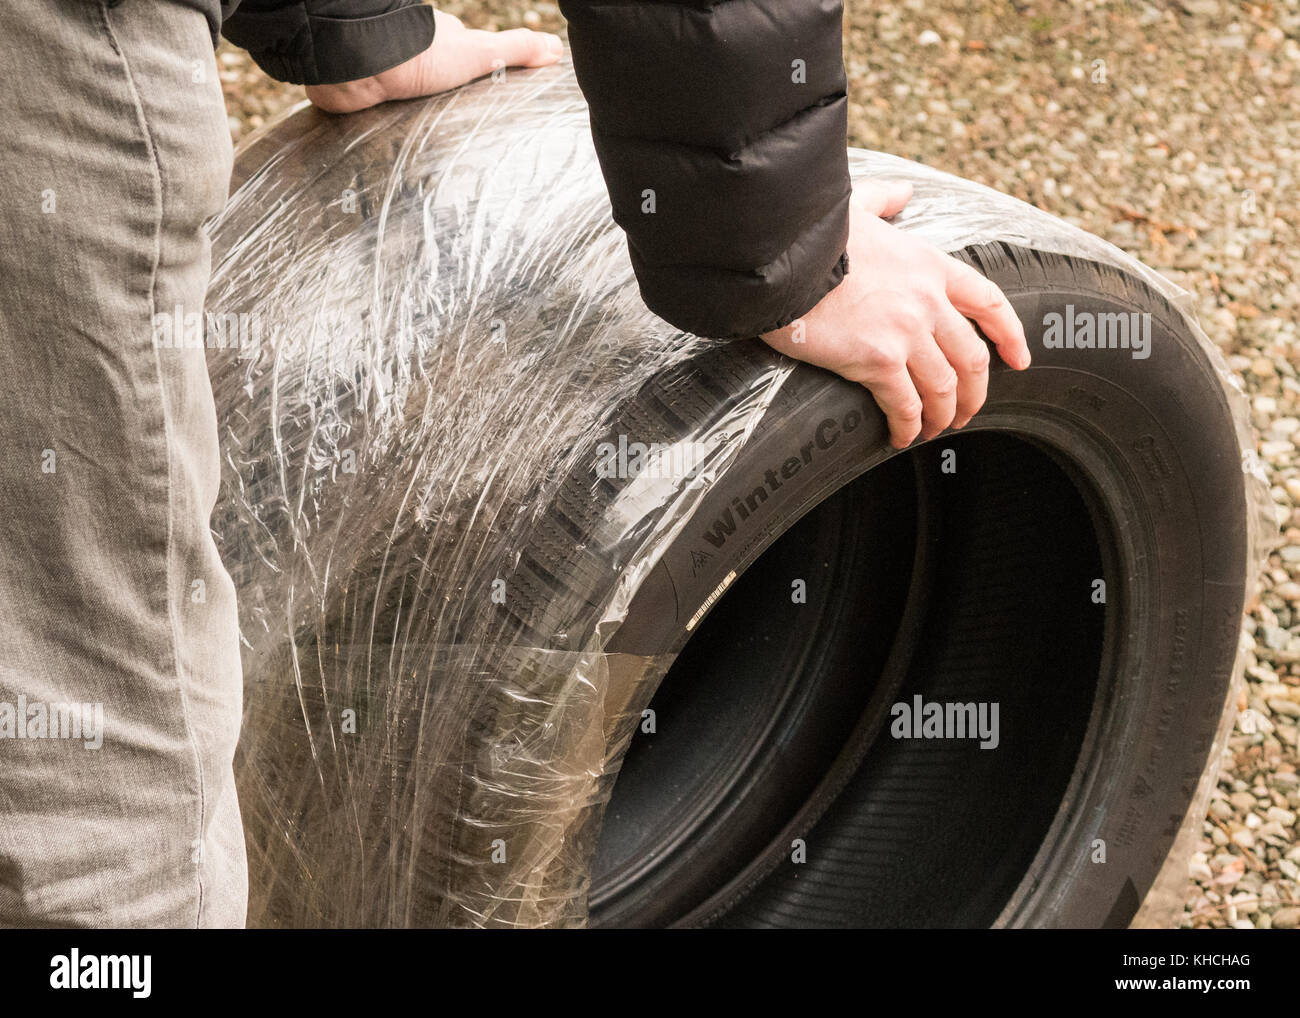 man taking winter tyres to be fitted onto vehicle ready for winter - Scotland, UK - Stock Image